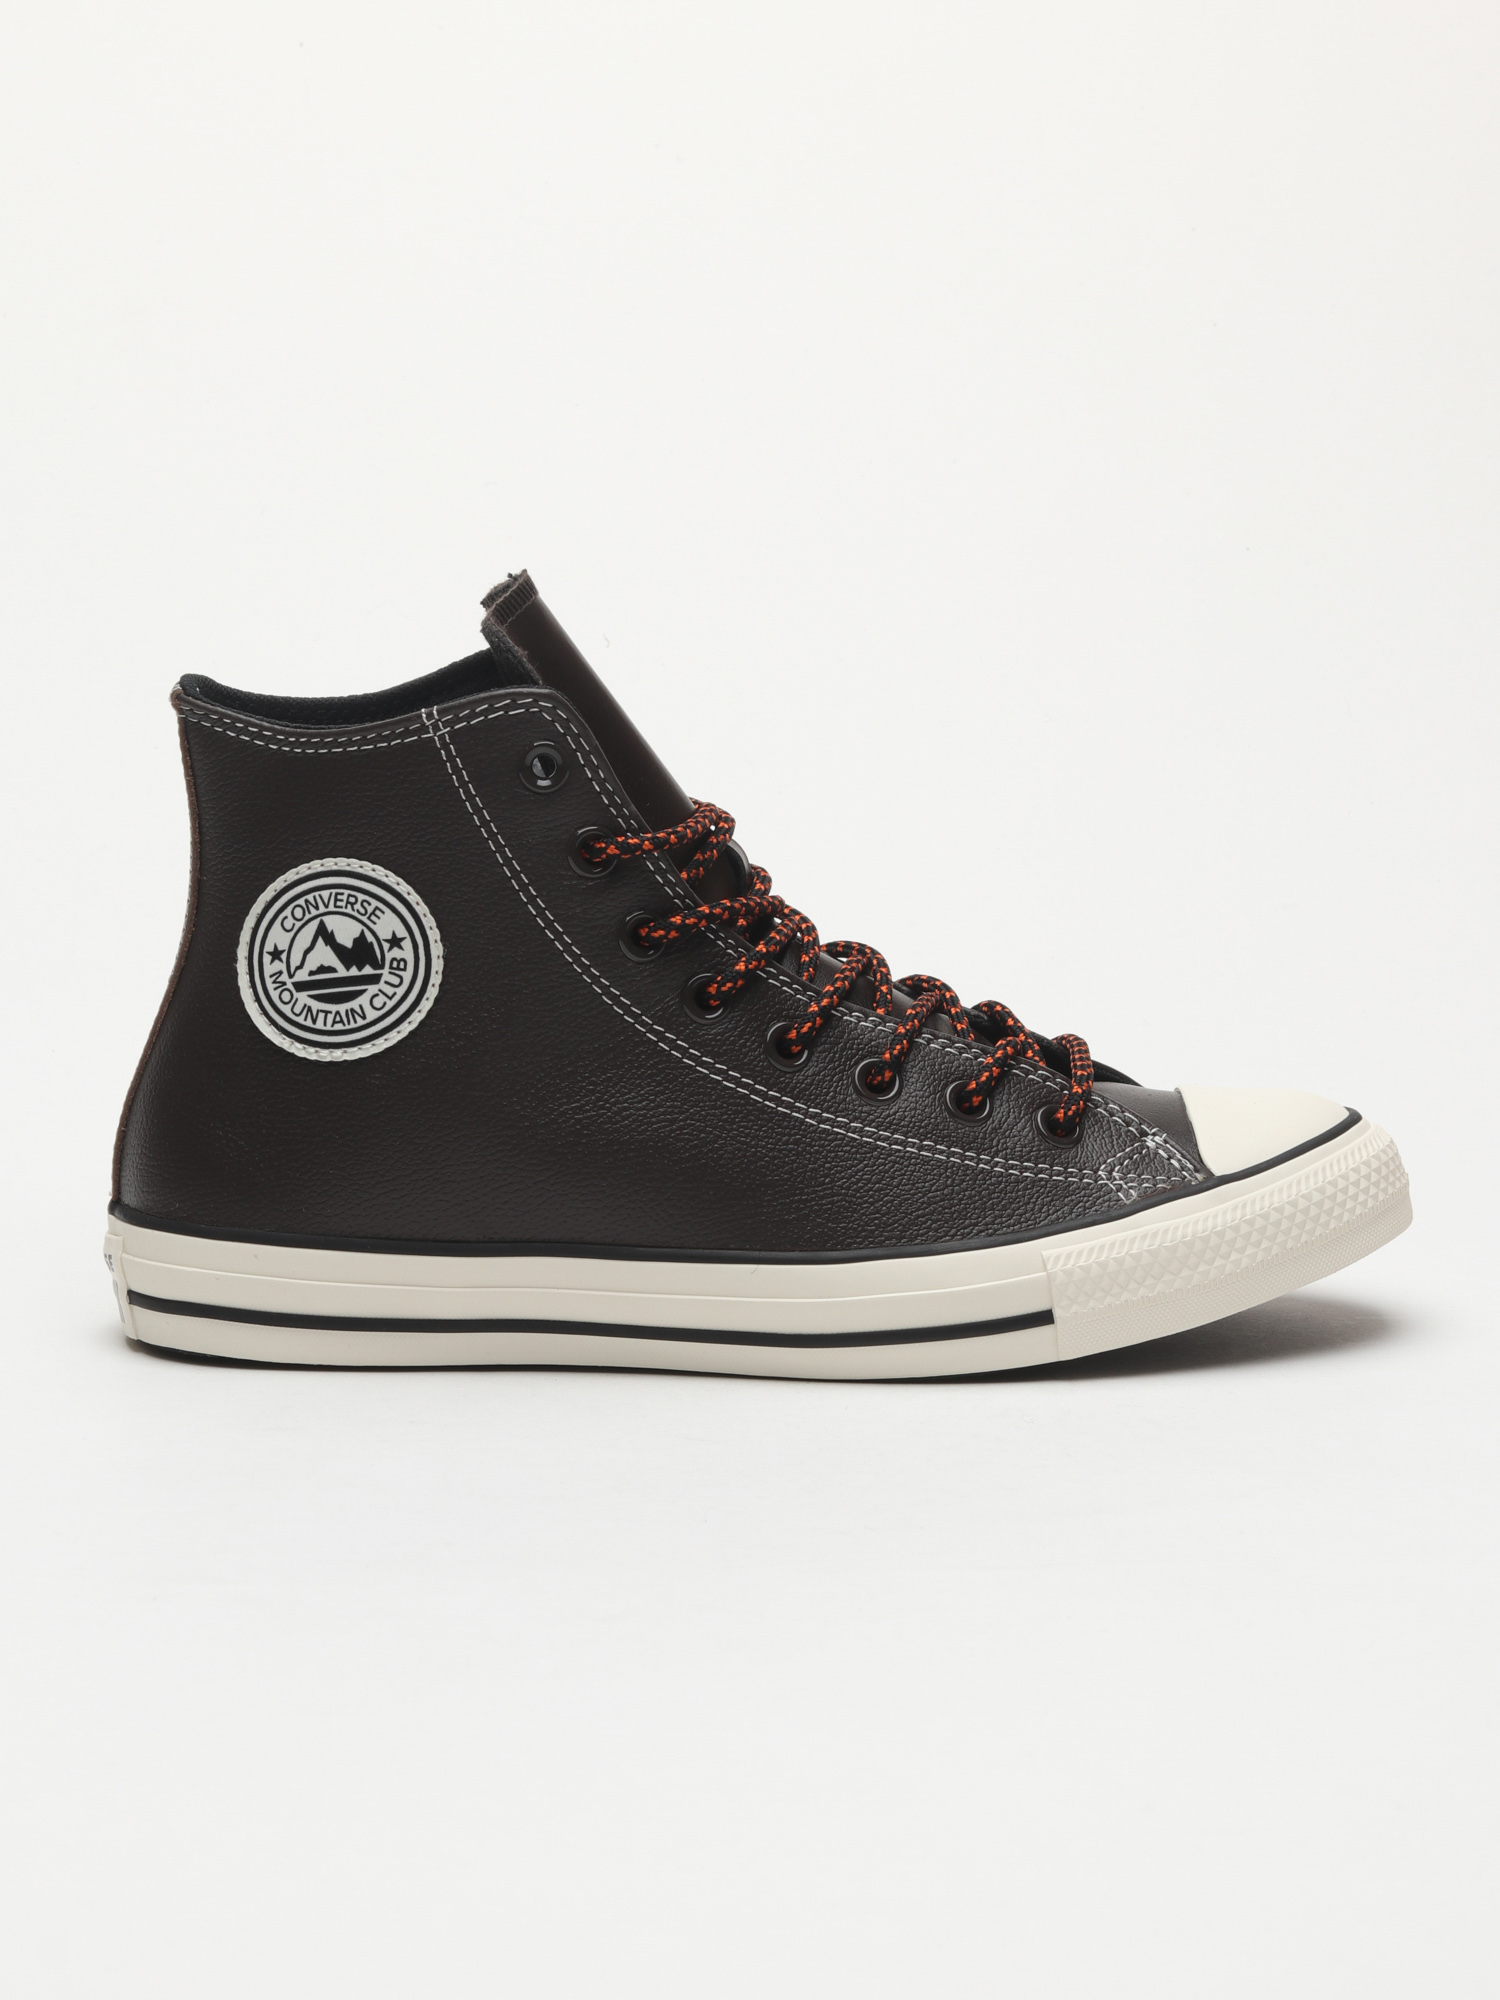 Topánky Converse Chuck Taylor All Star Archival Leather Hnedá